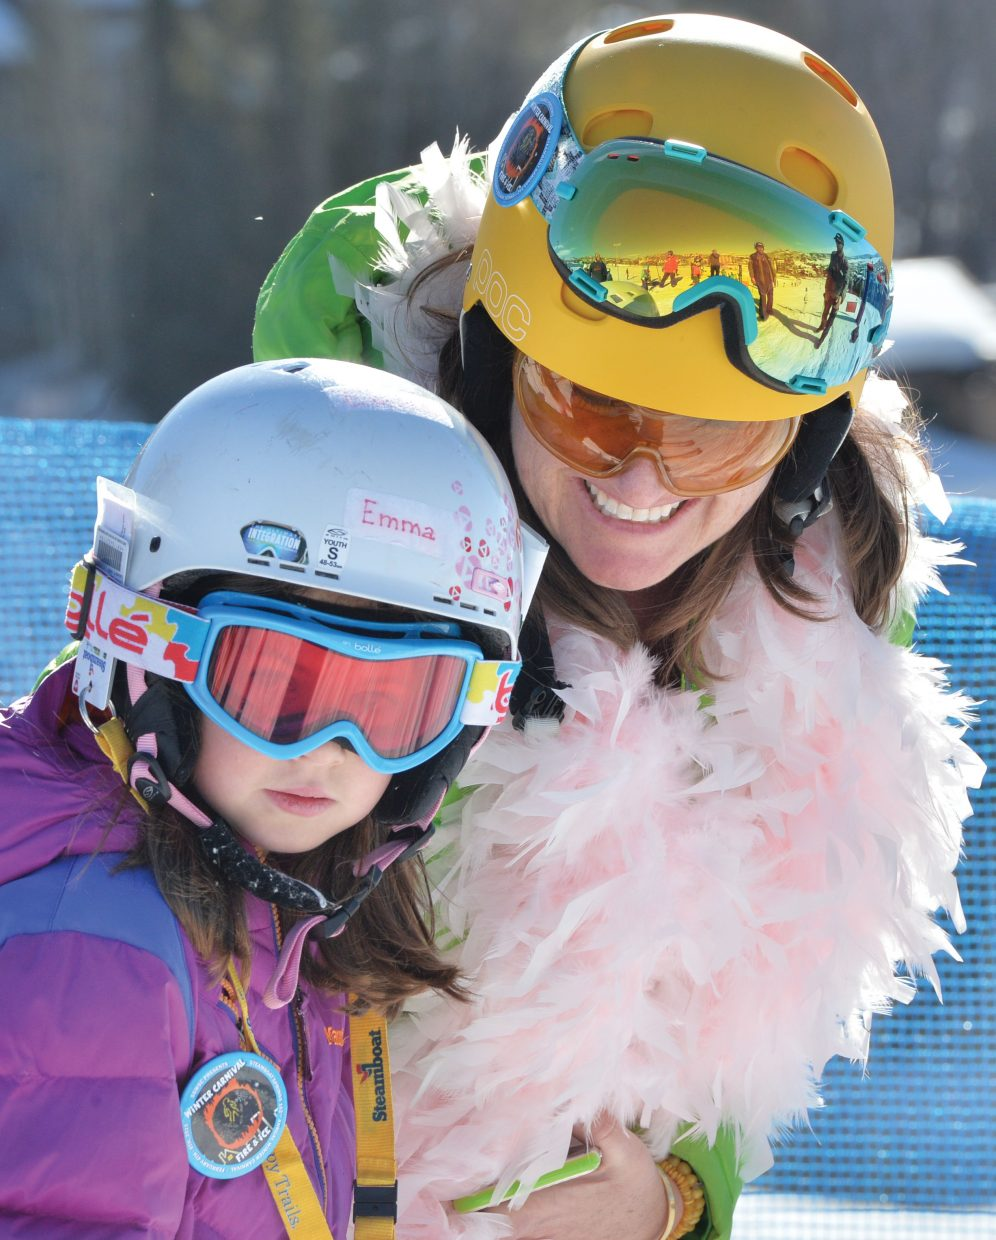 Ski racer Emma Russell gets a few last minute tips from her coach Stephanie Orozco at the starting line of the 2015 Soda Pop Slalom, which took place Friday at Steamboat Ski Area. The Steamboat Springs Winter Carnival tradition is a right-of-passage for young skiers in the Steamboat Springs area.